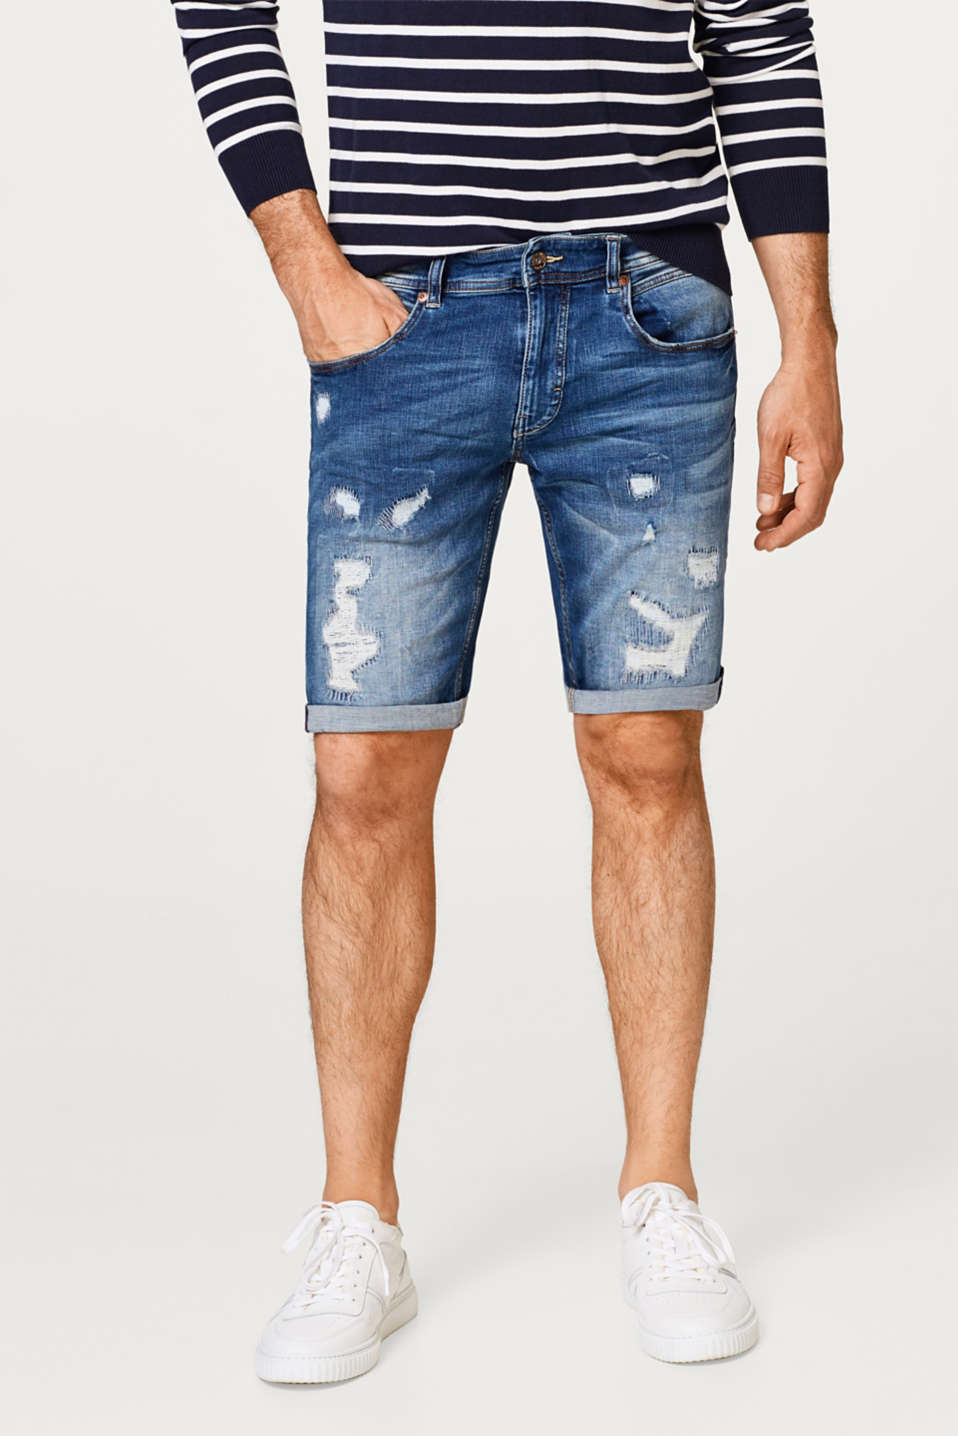 Esprit - Super stretchy denim shorts with distressed effects